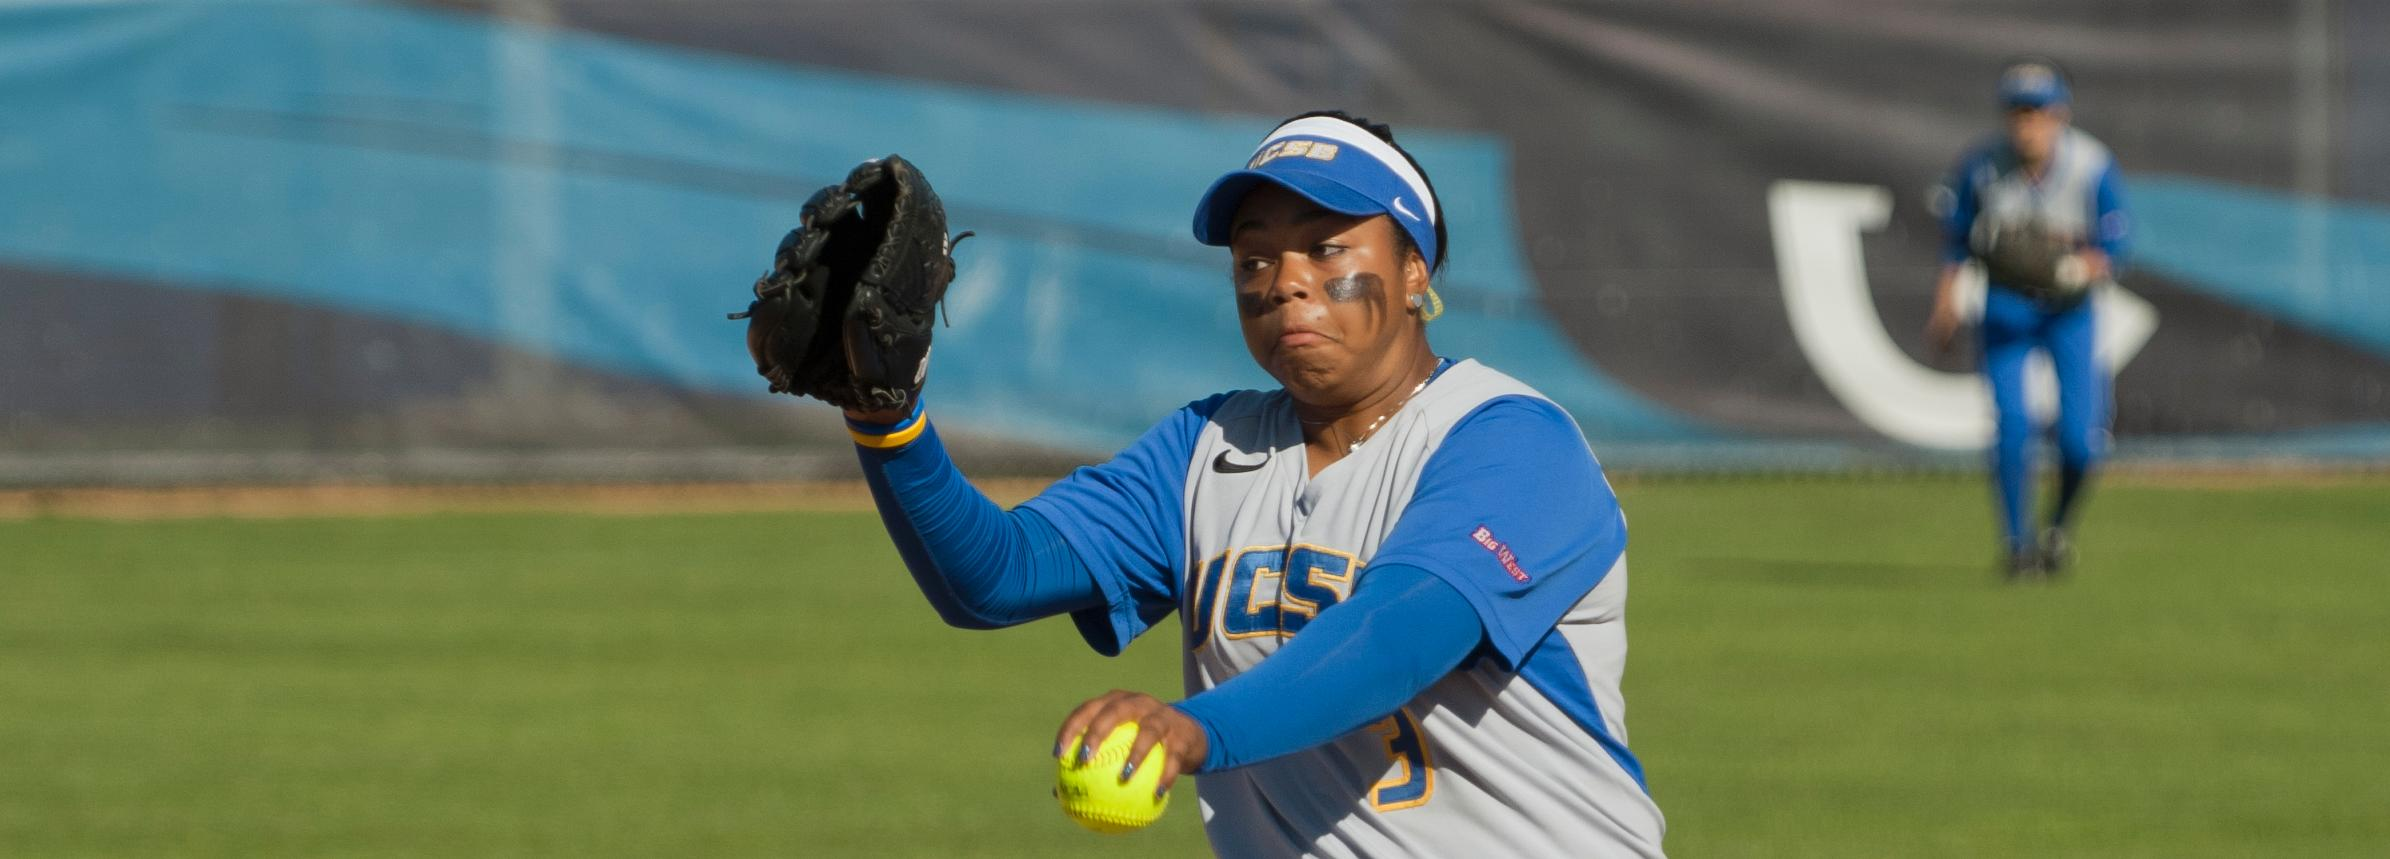 UCSB Battles for Two Wins on Second Day of Gaucho Classic II